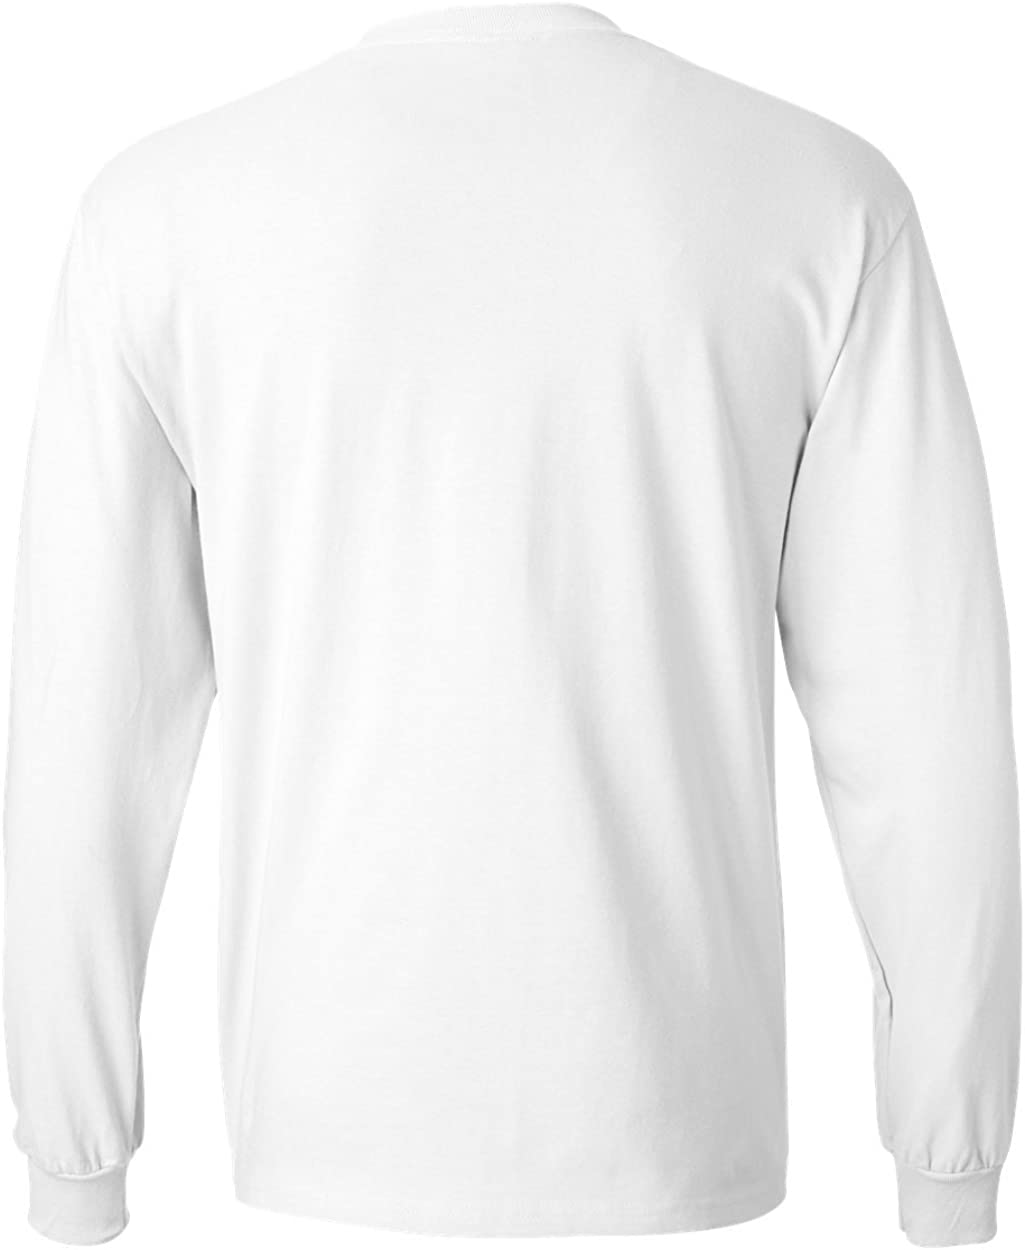 Hanes Men's Long-Sleeve Beefy-T Shirt (Pack of 2) 1 White / 1 Navy